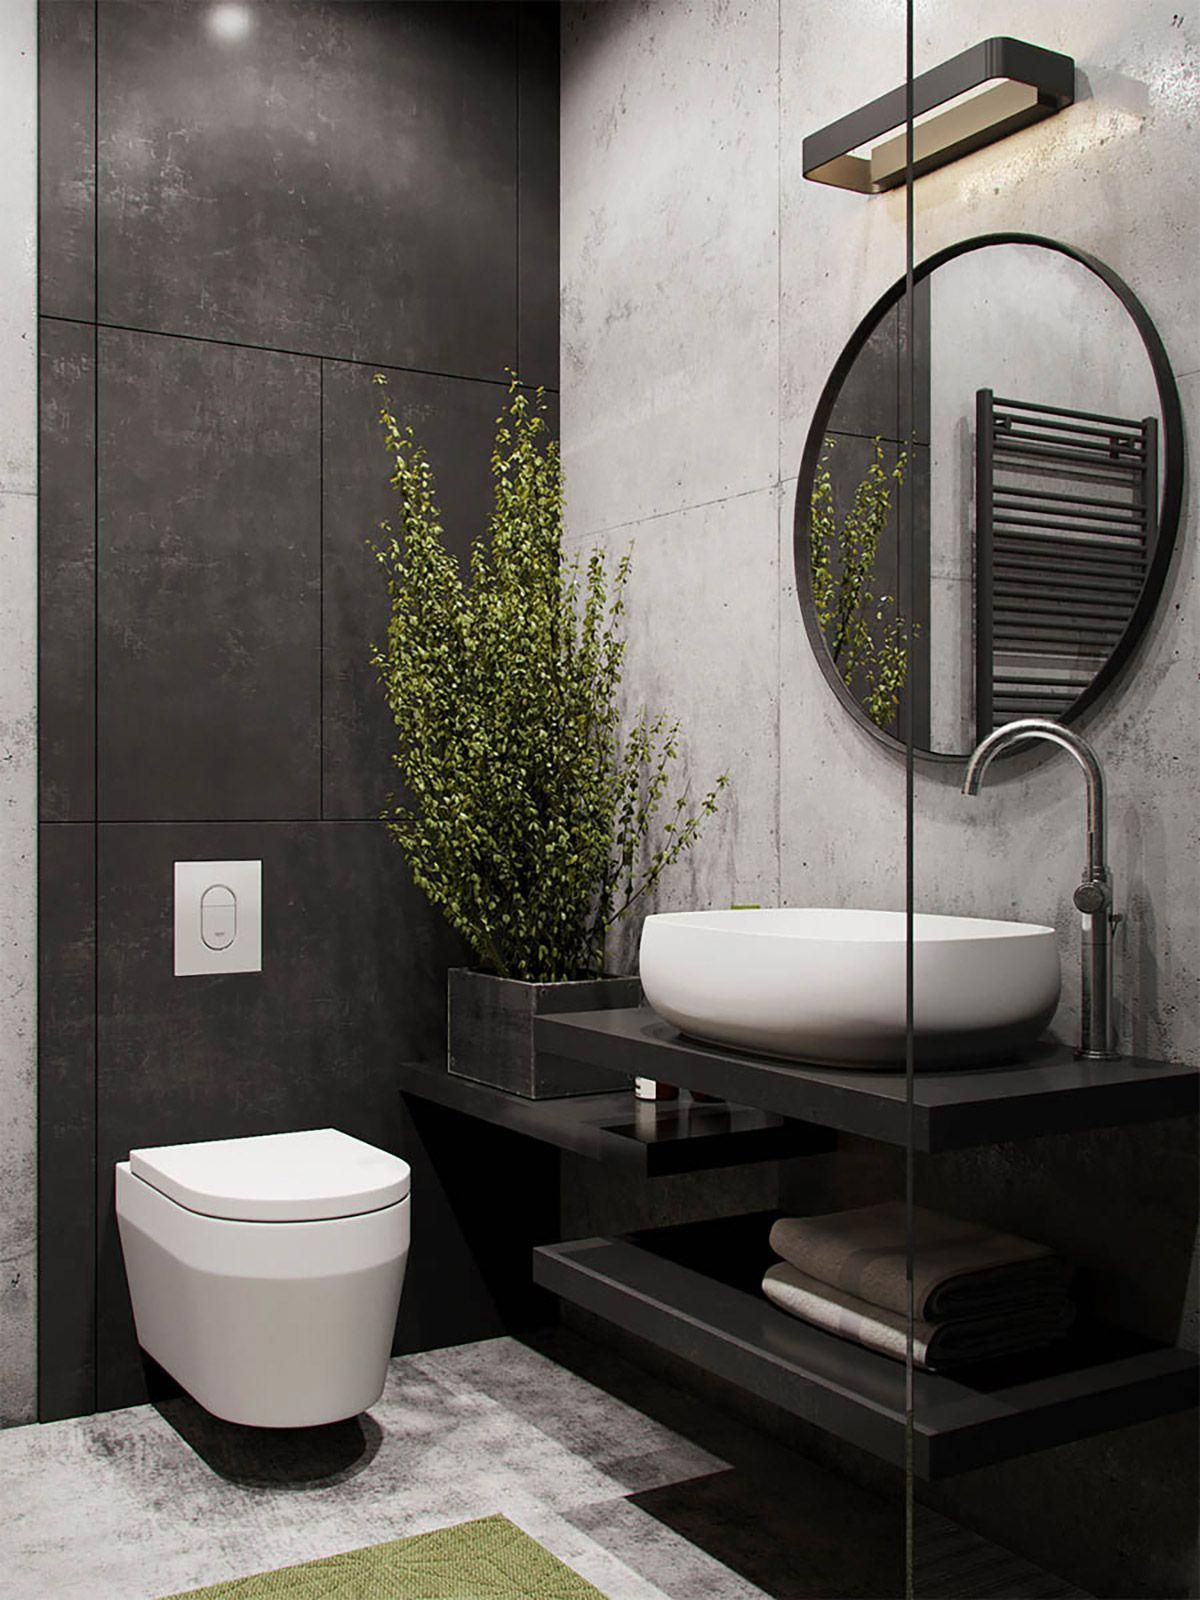 How To Maintain An Orchid Saleprice 30 Industrial Bathroom Design Bathroom Remodel Designs Industrial Style Bathroom